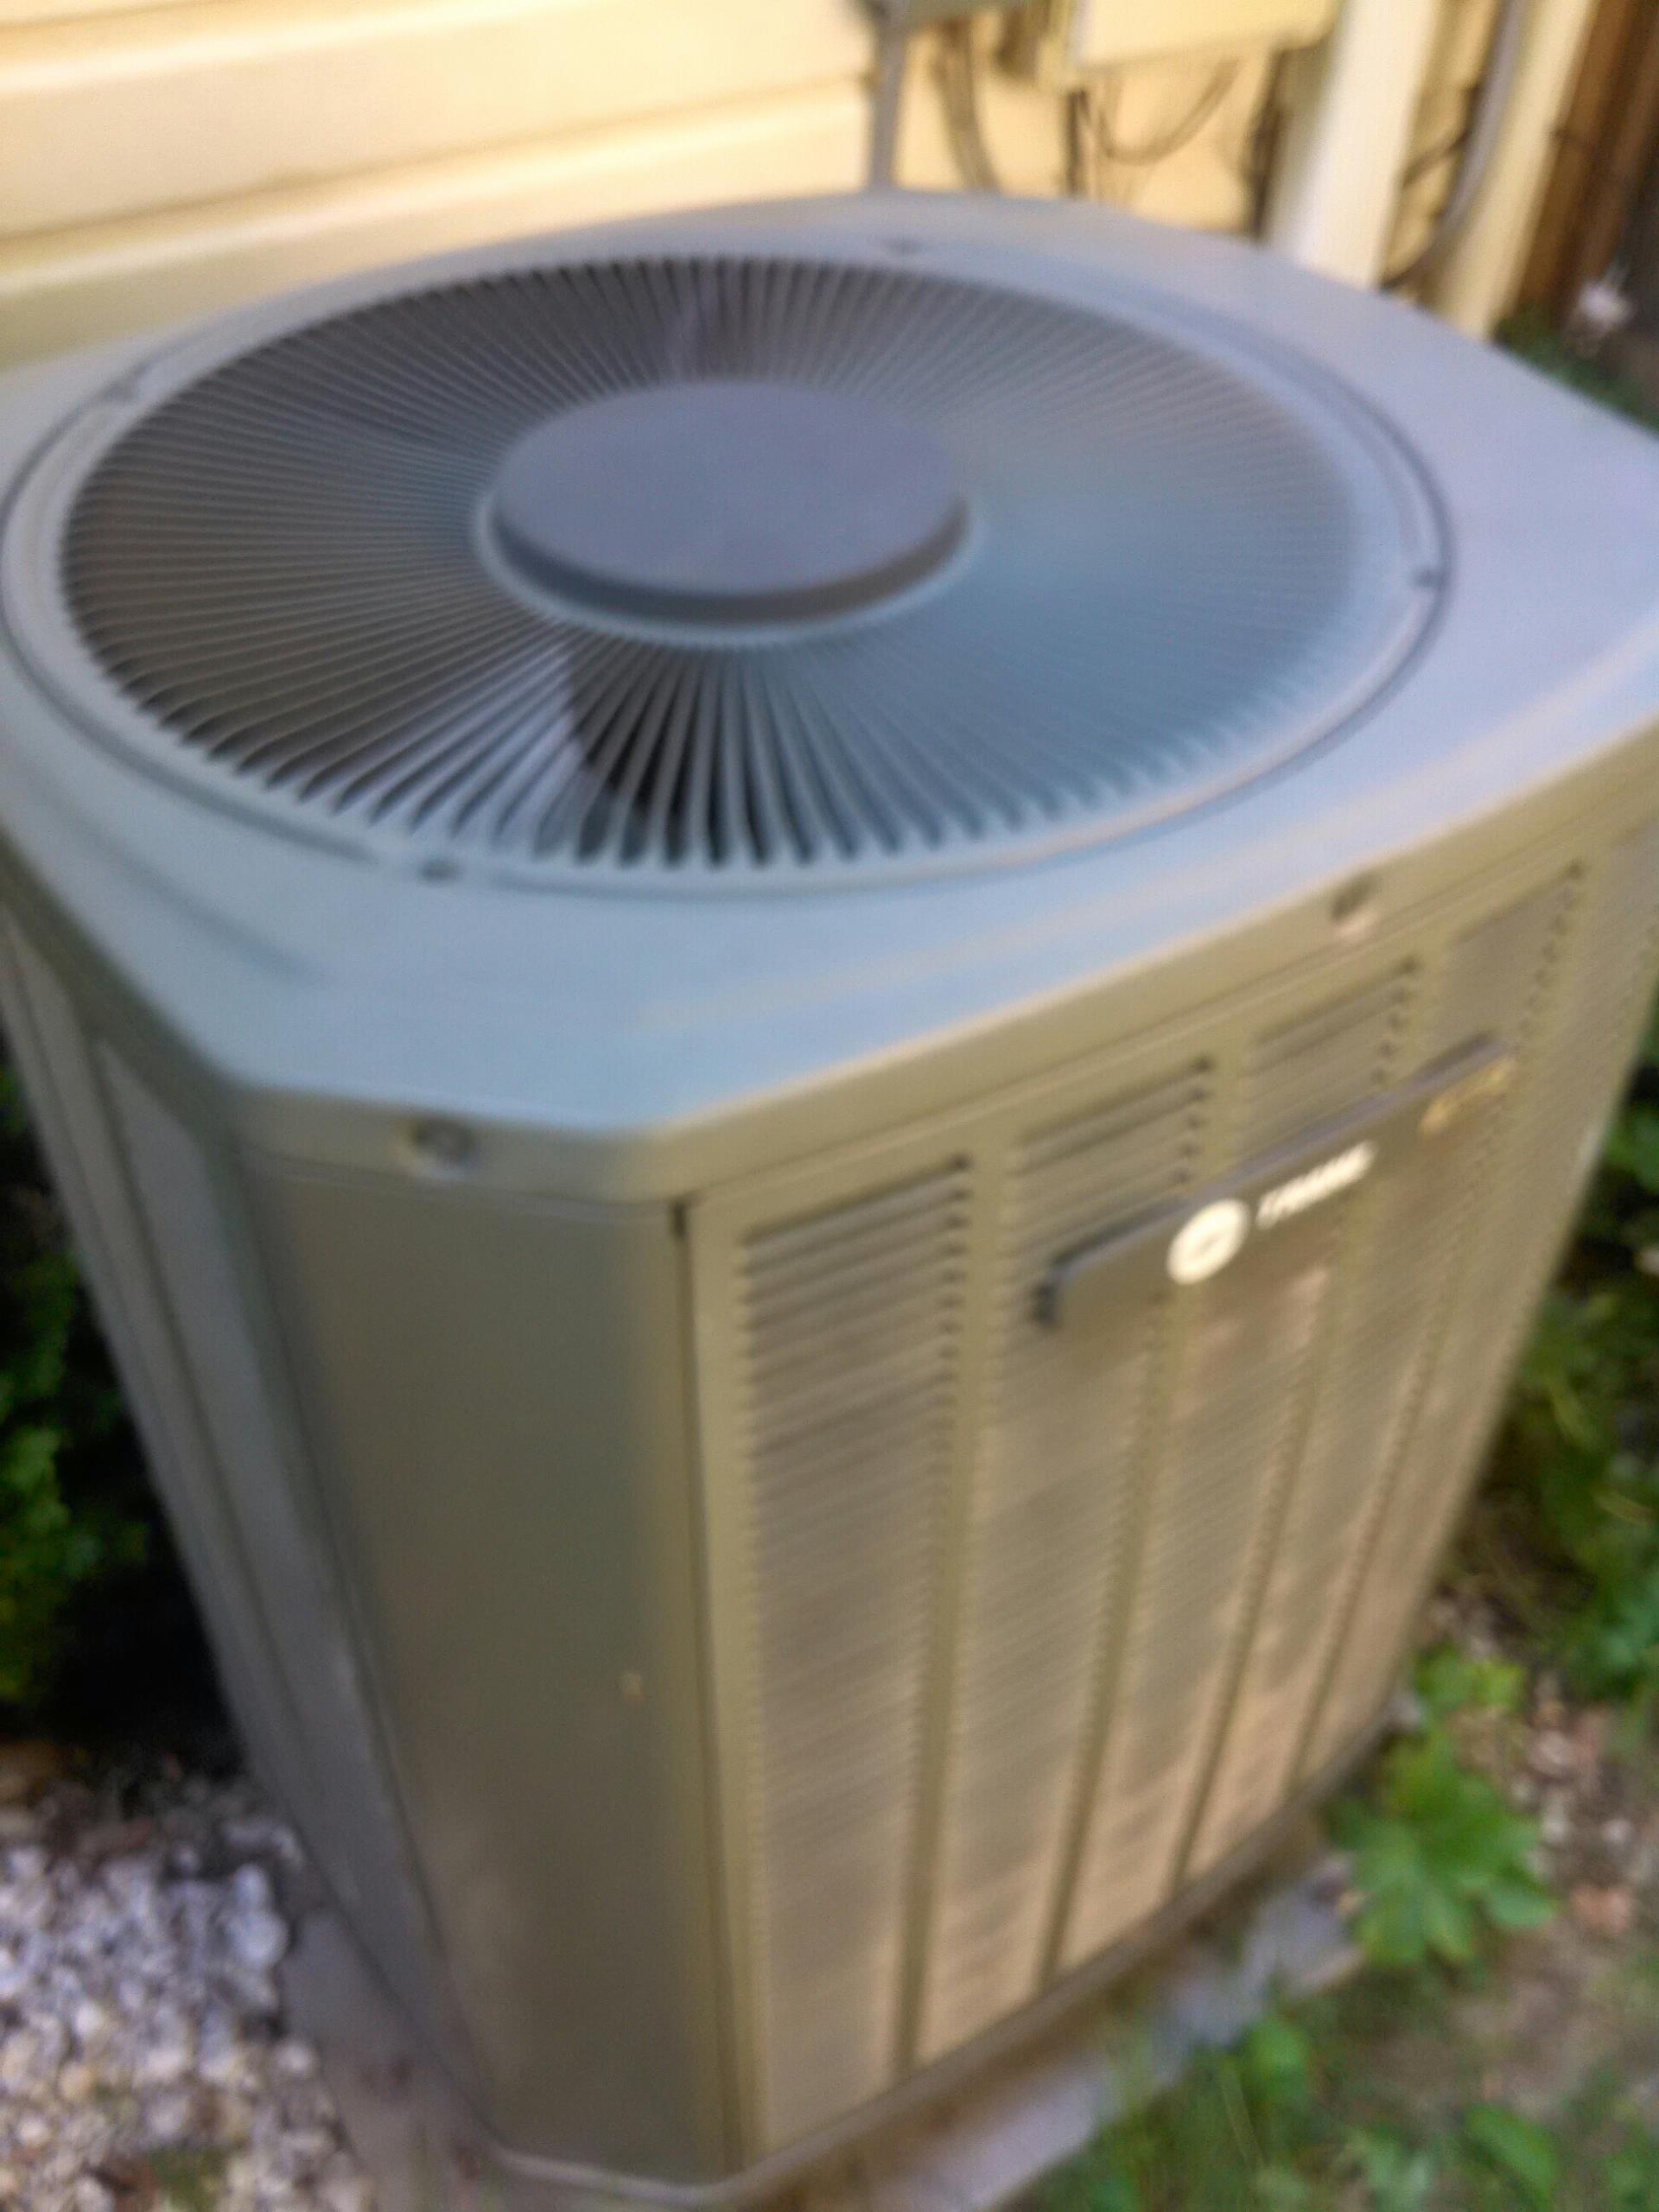 Crofton, MD - Trane heat pump furnace heating & ac air conditioning system replacement installation service call Crofton Maryland 21114